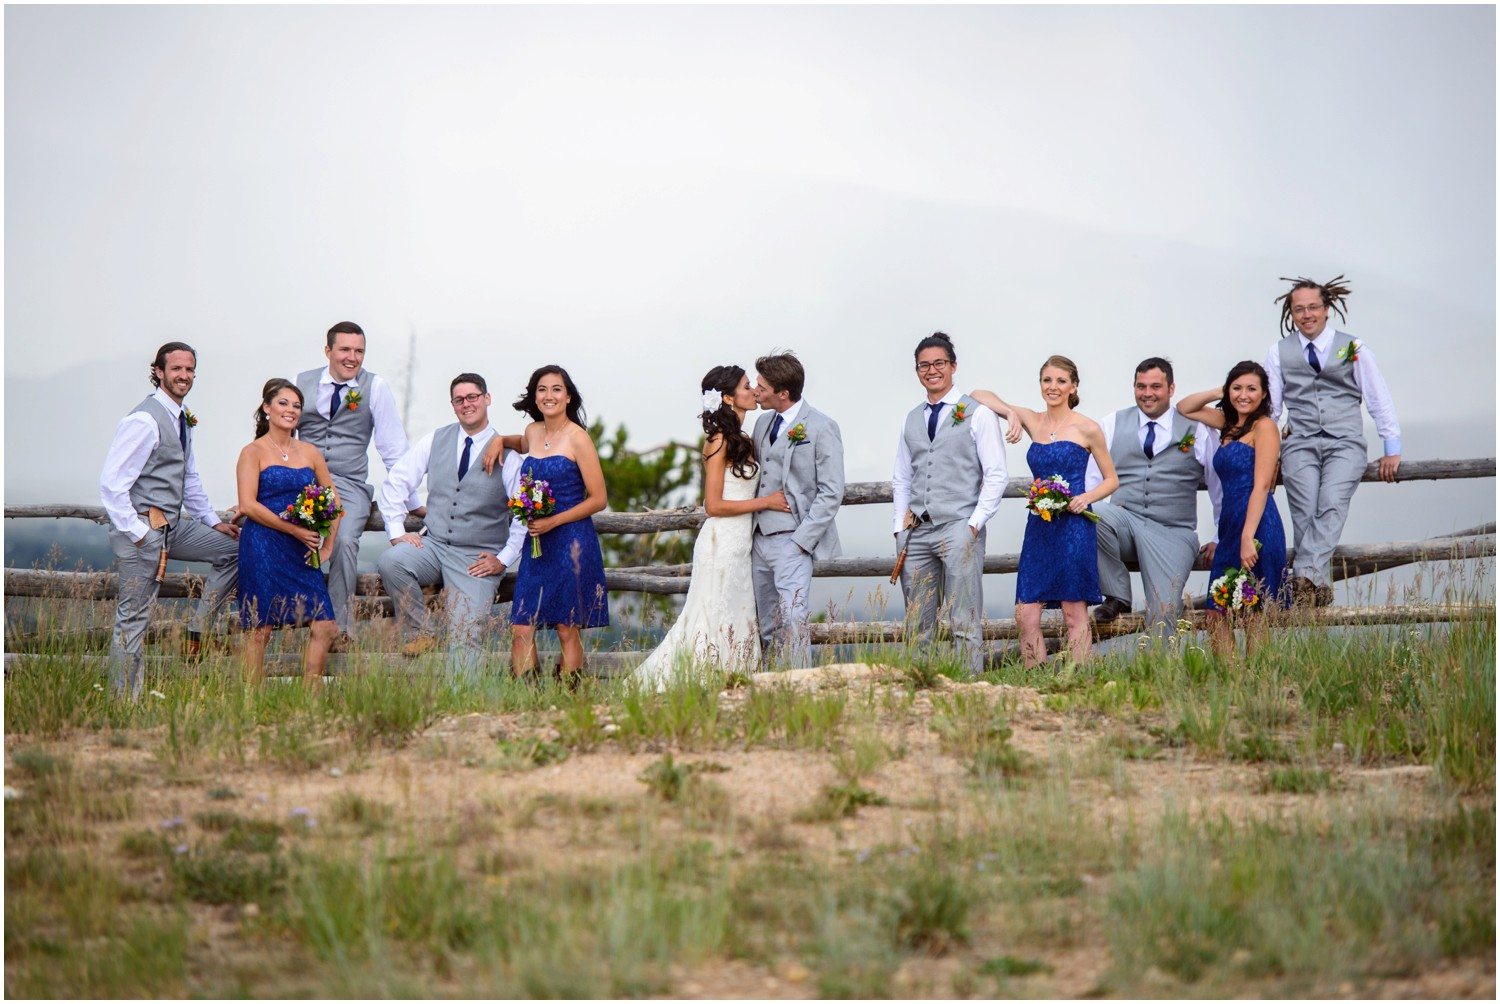 477-Granby-ranch-summer-wedding-photography-Ross.jpg